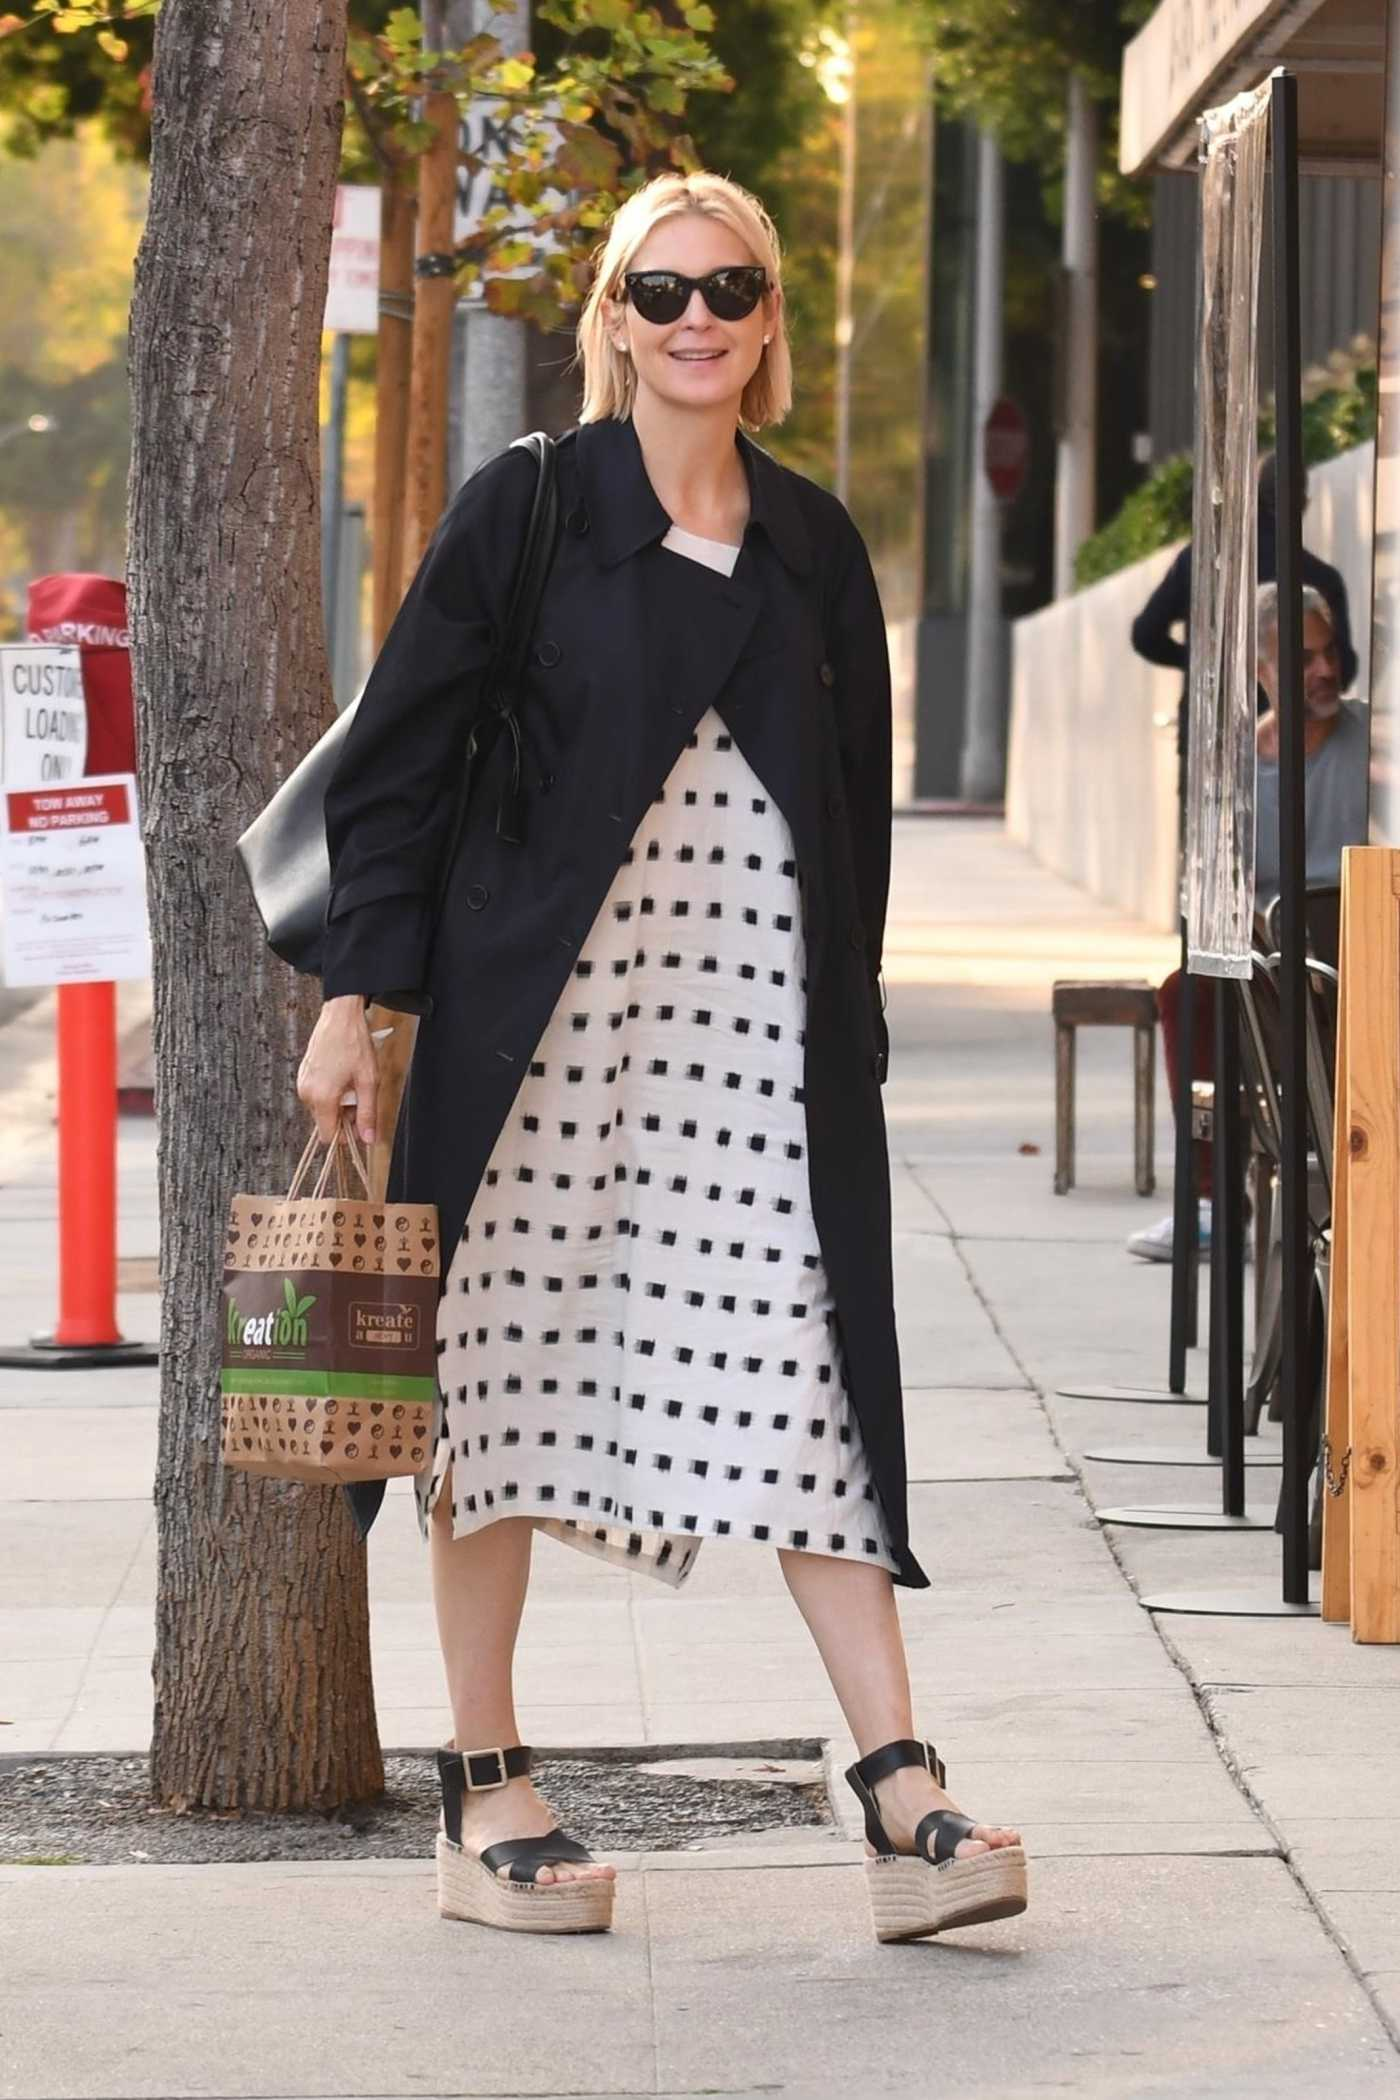 Kelly Rutherford in a Black Trench Coat Was Seen Out in West Hollywood 10/22/2020